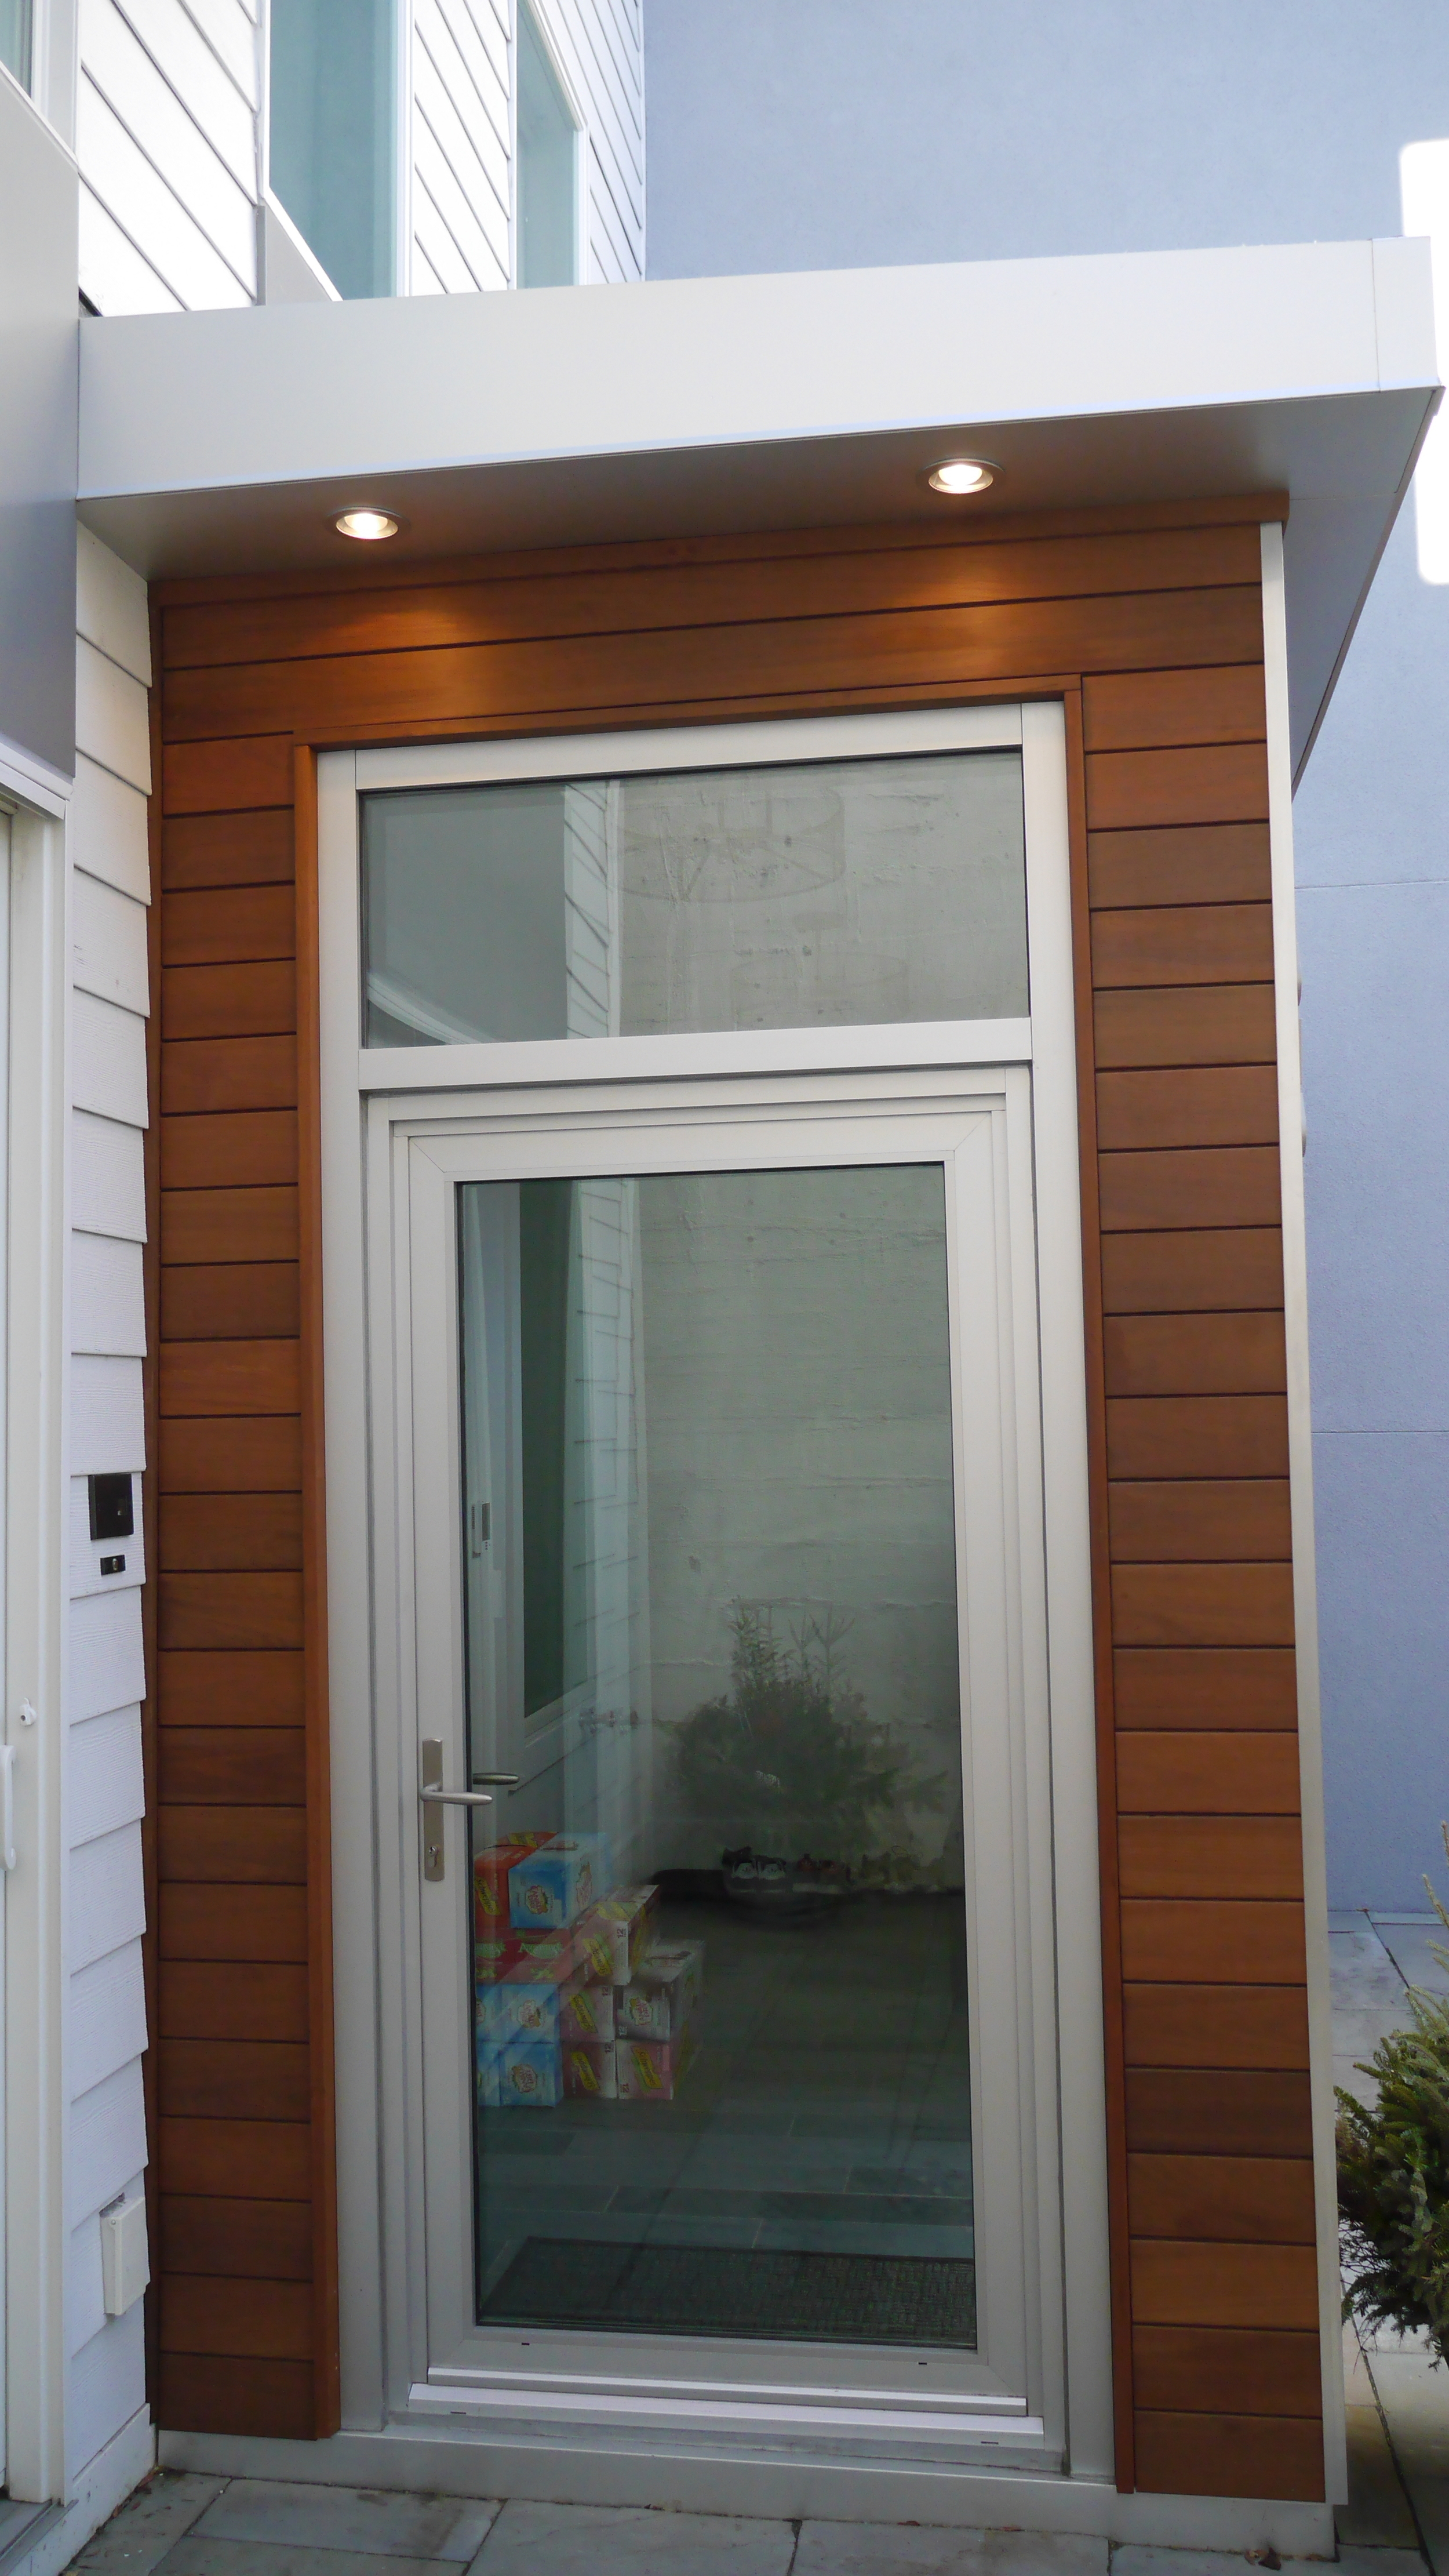 Mataverge Ipe Siding installation by Groundswell Contracting